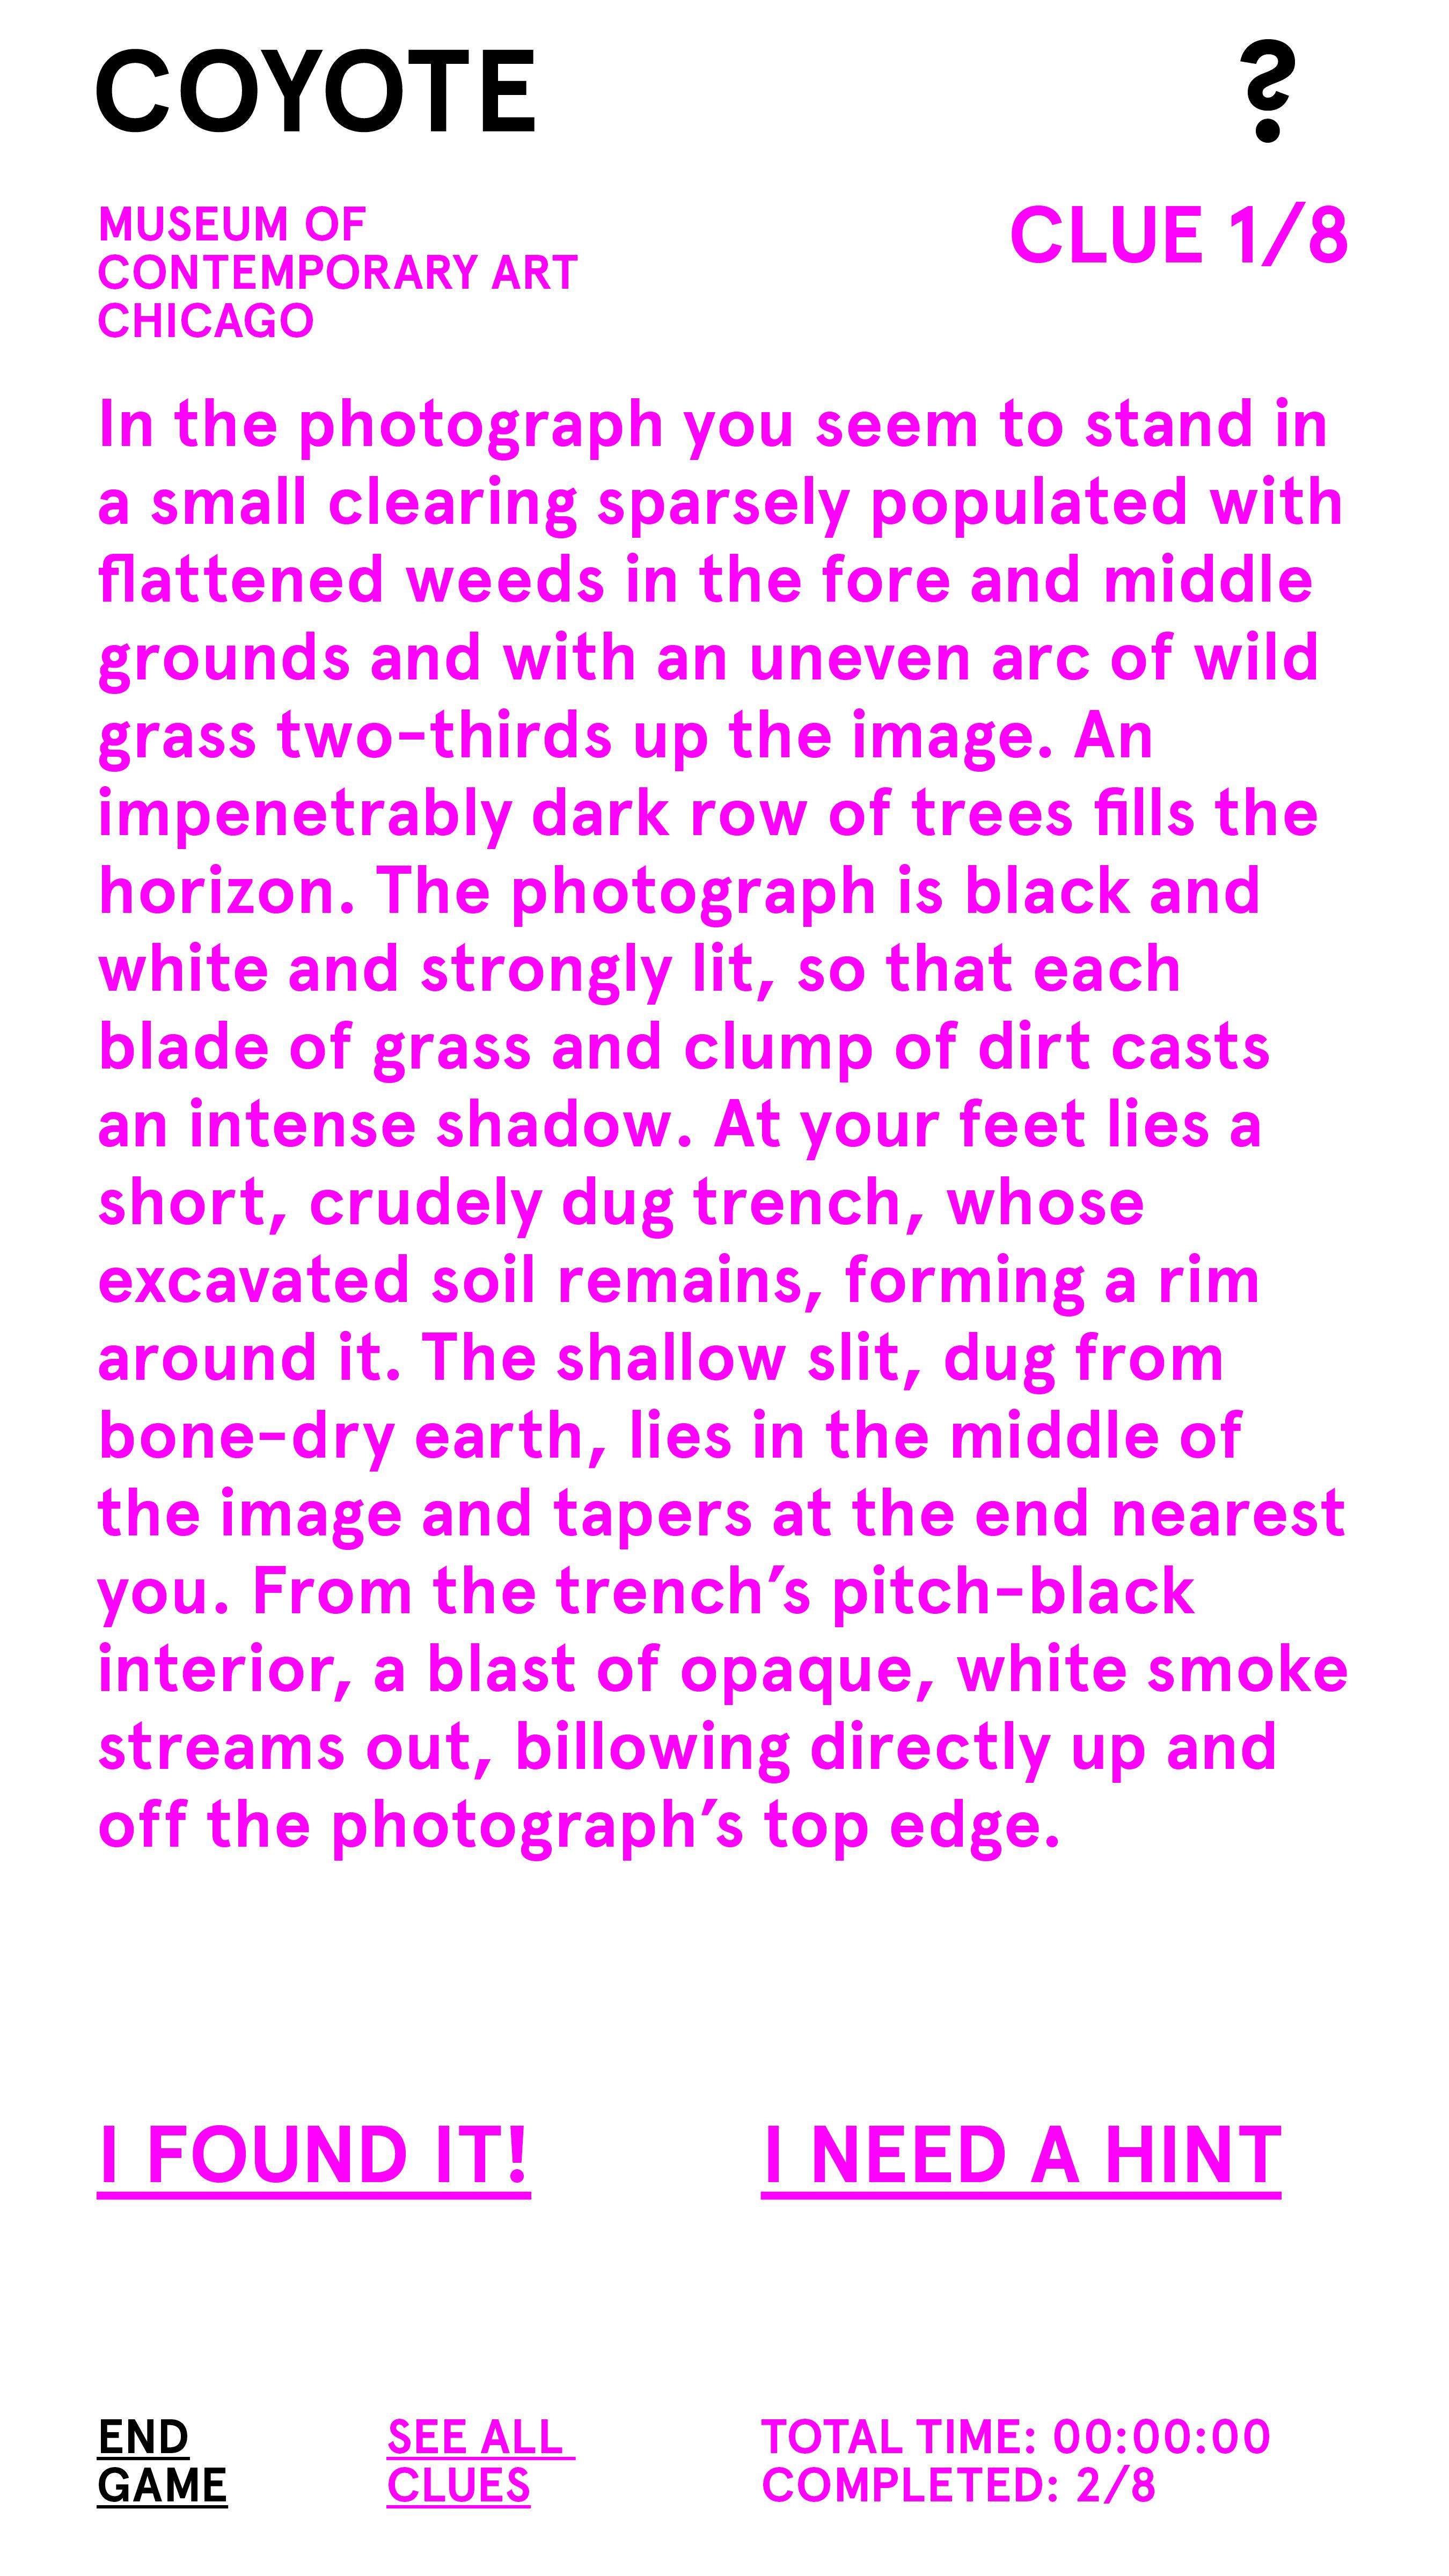 """A block of vivid pink text labeled """"CLUE 1/8"""" describes a photograph in great detail."""